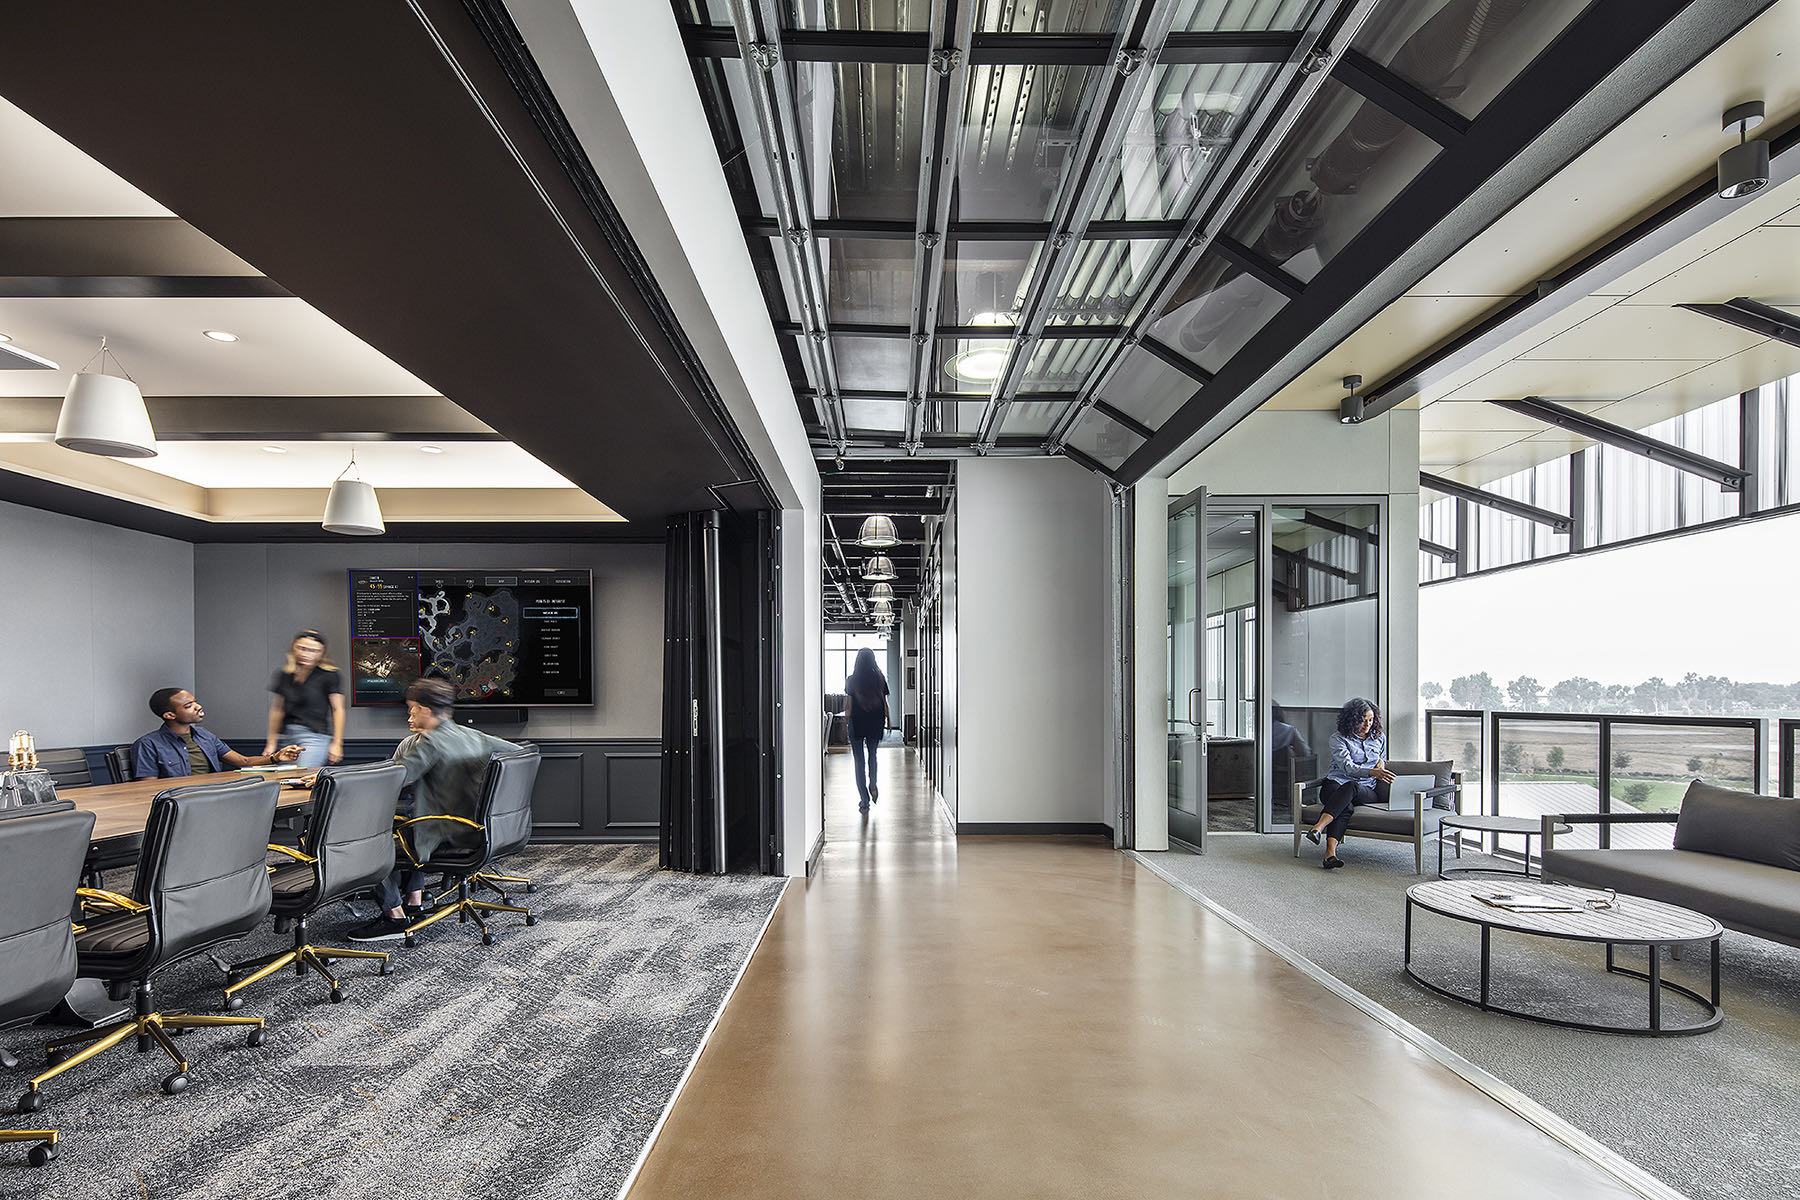 videogaming-company-office-6